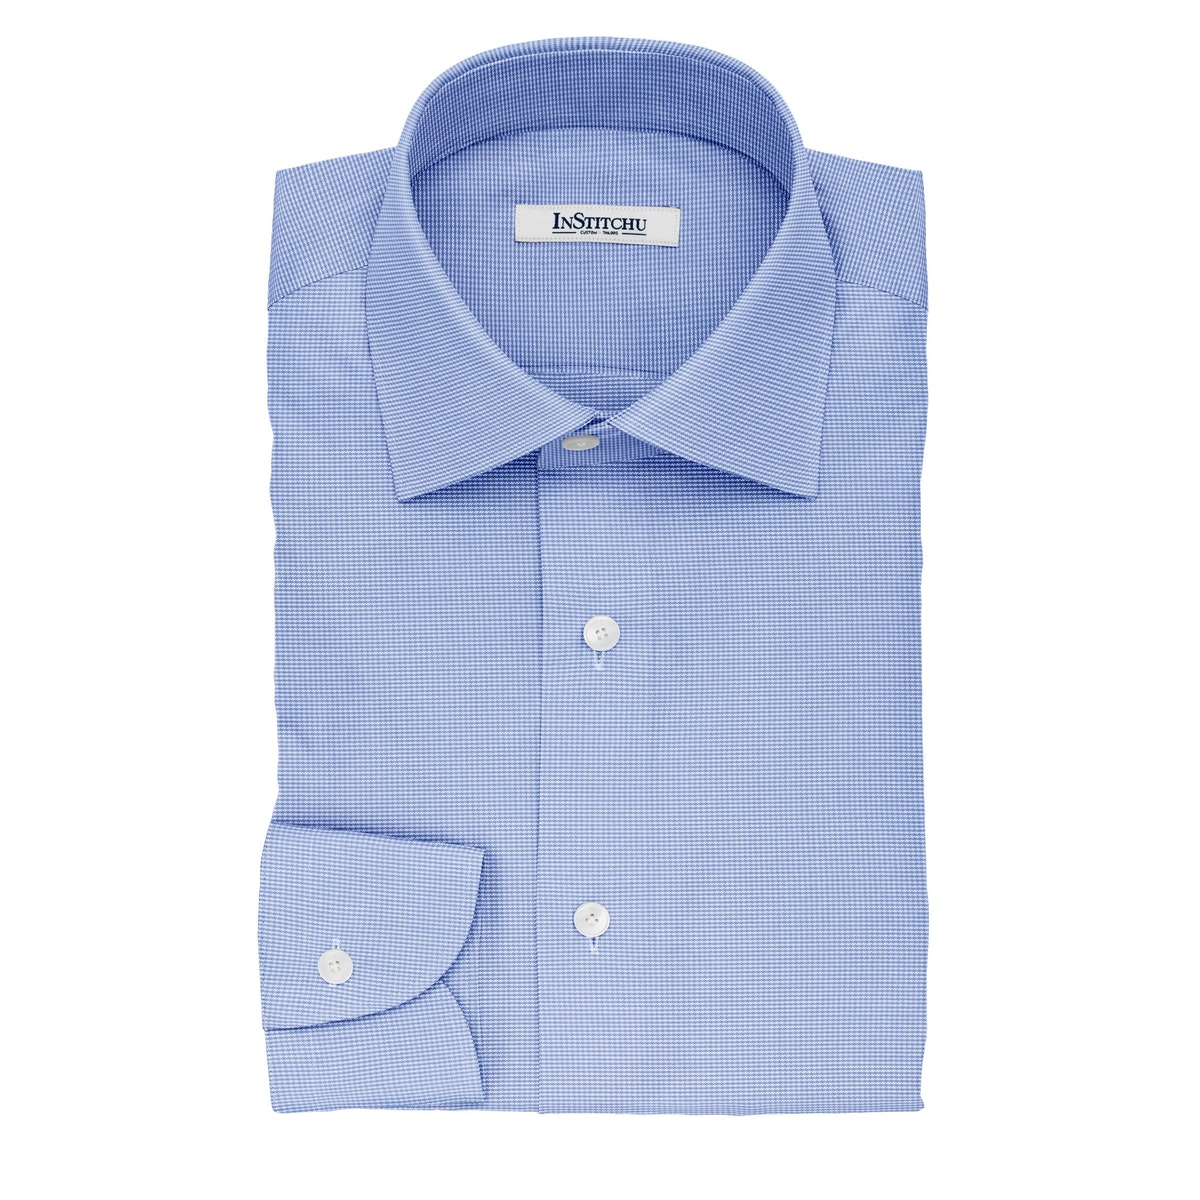 InStitchu Collection The Kipling Blue and White Striped Cotton Shirt